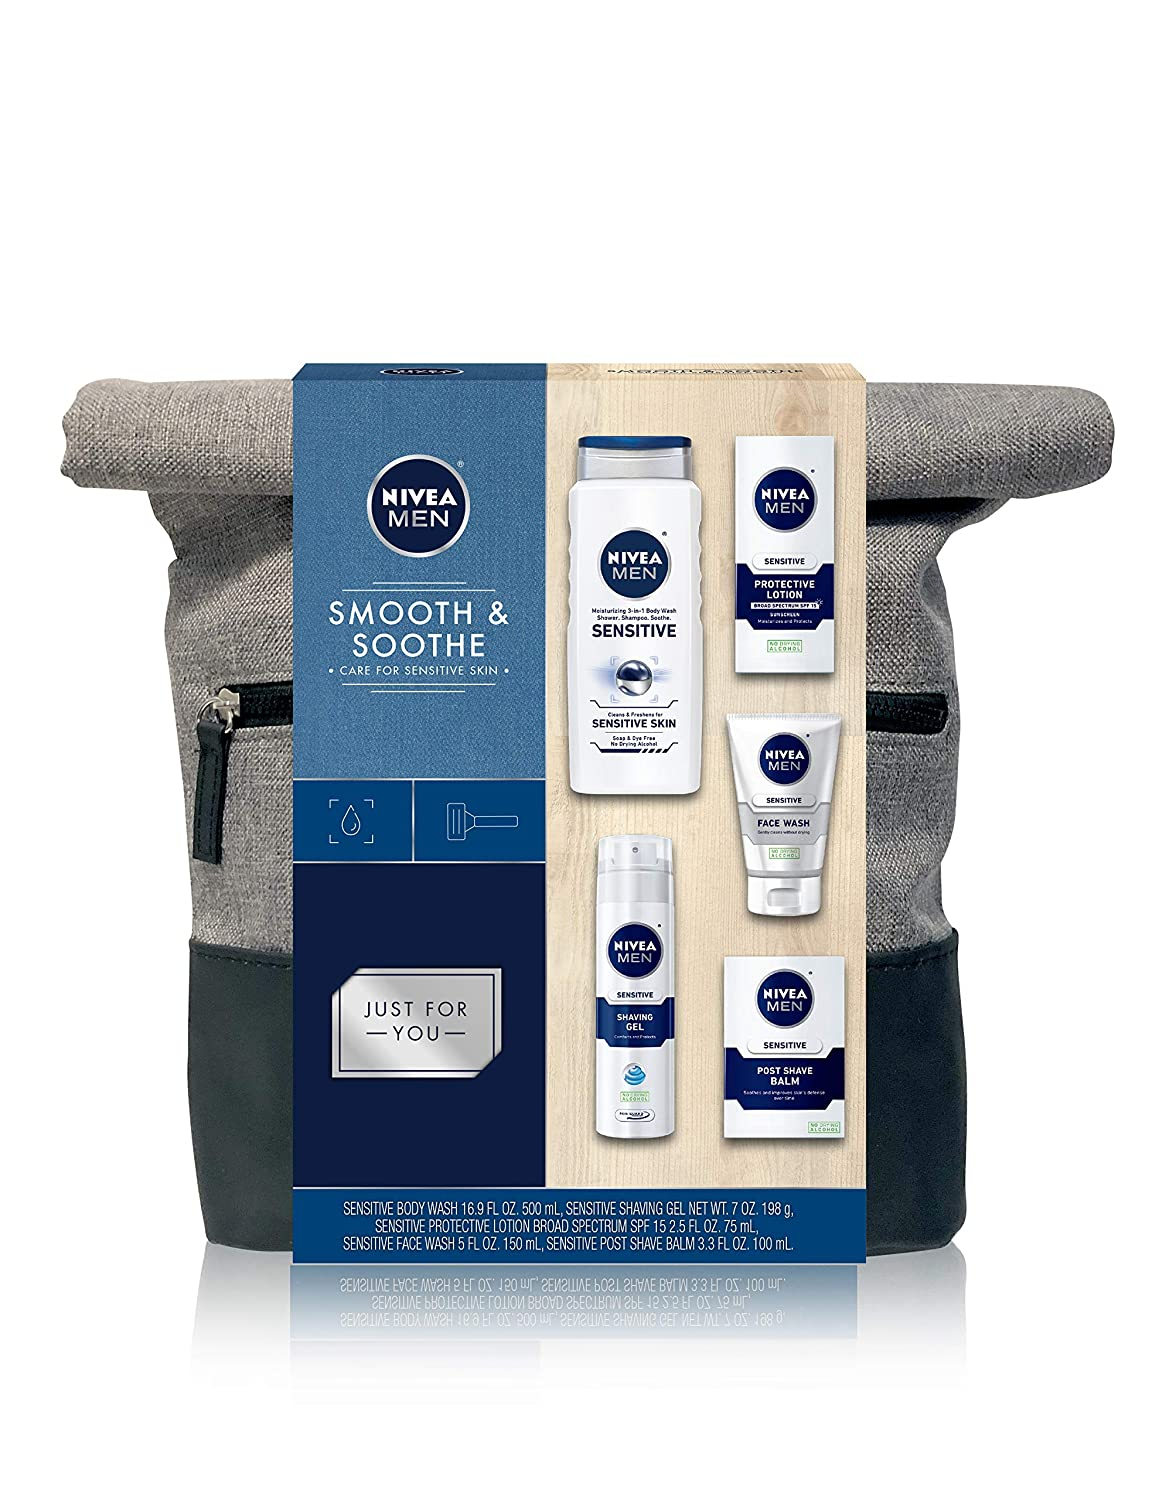 NIVEA Men Dapper Duffel Gift Set